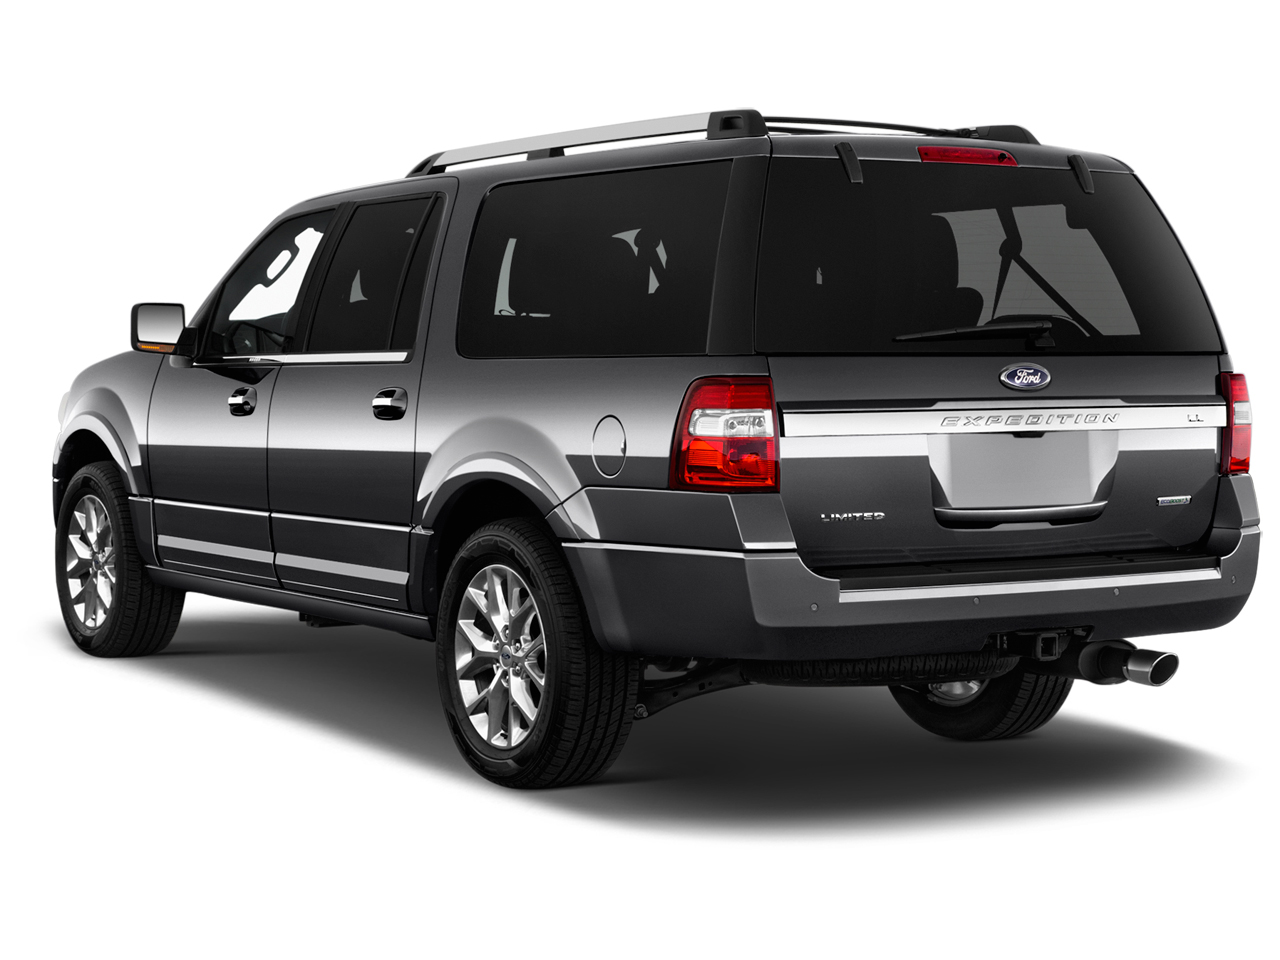 2018 ford expedition el prices in oman gulf specs. Black Bedroom Furniture Sets. Home Design Ideas